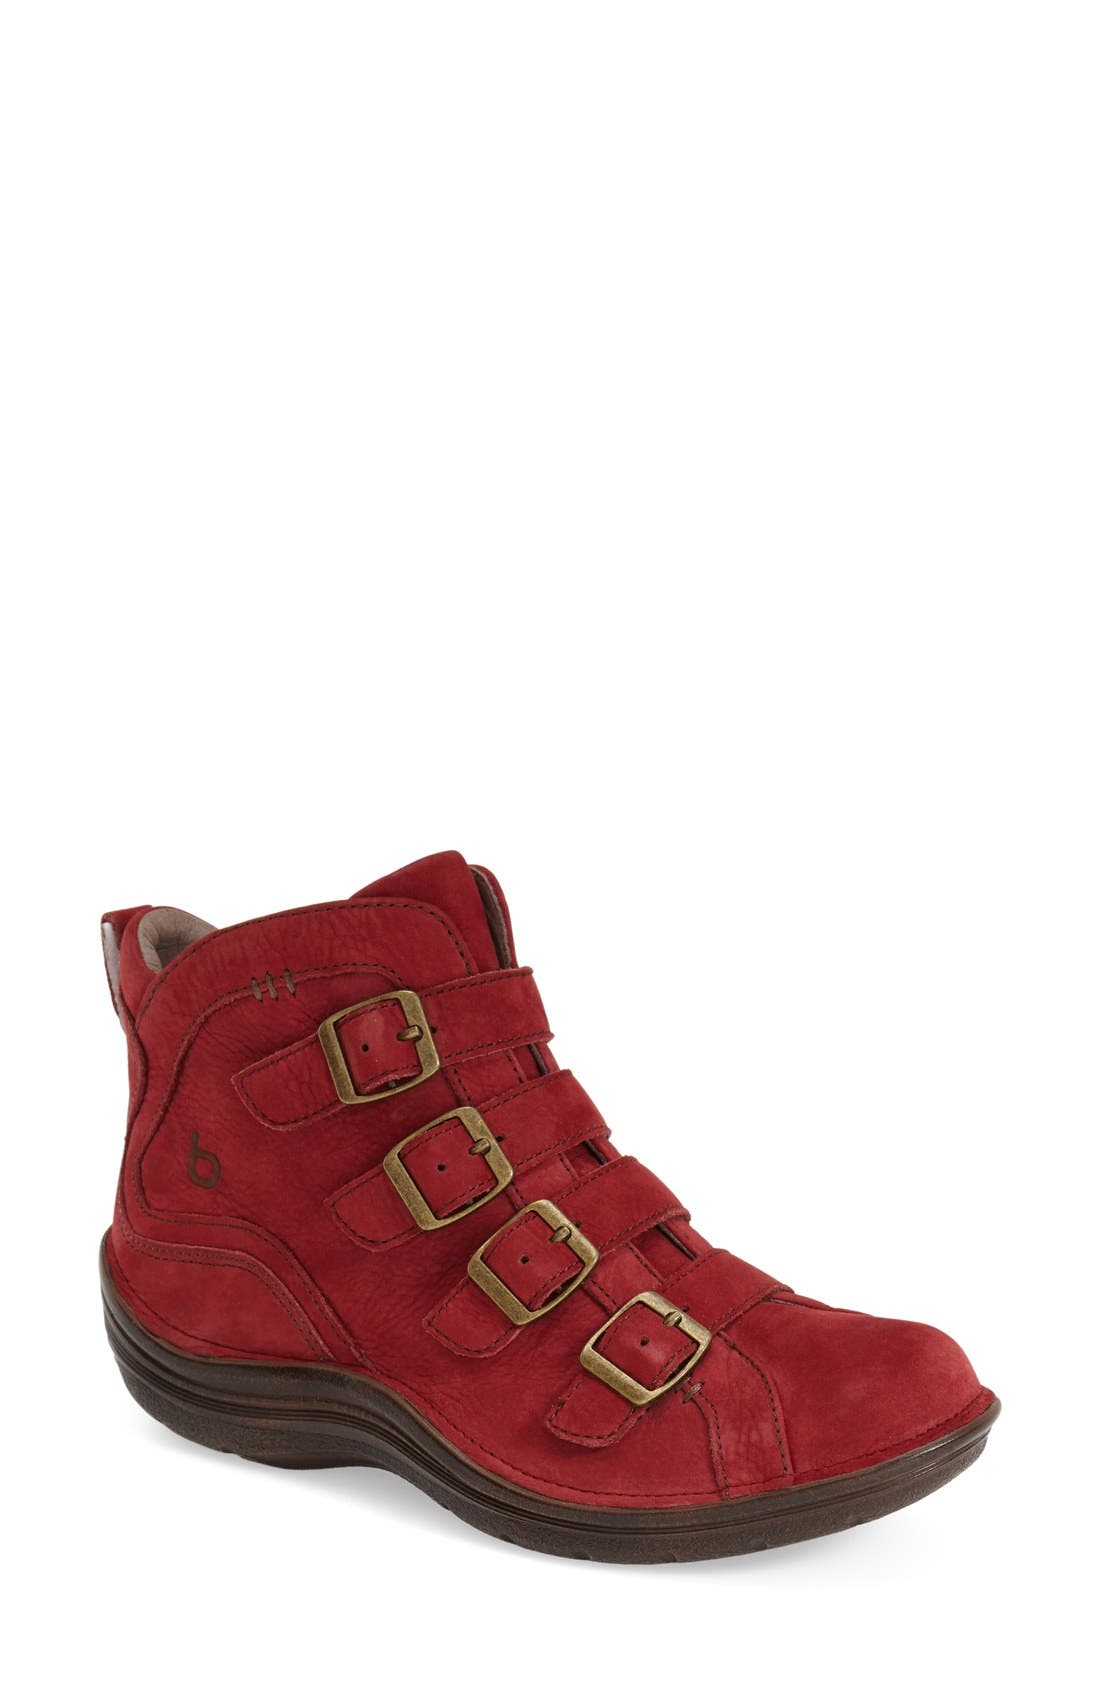 'Orion' Bootie,                             Main thumbnail 1, color,                             Red Leather